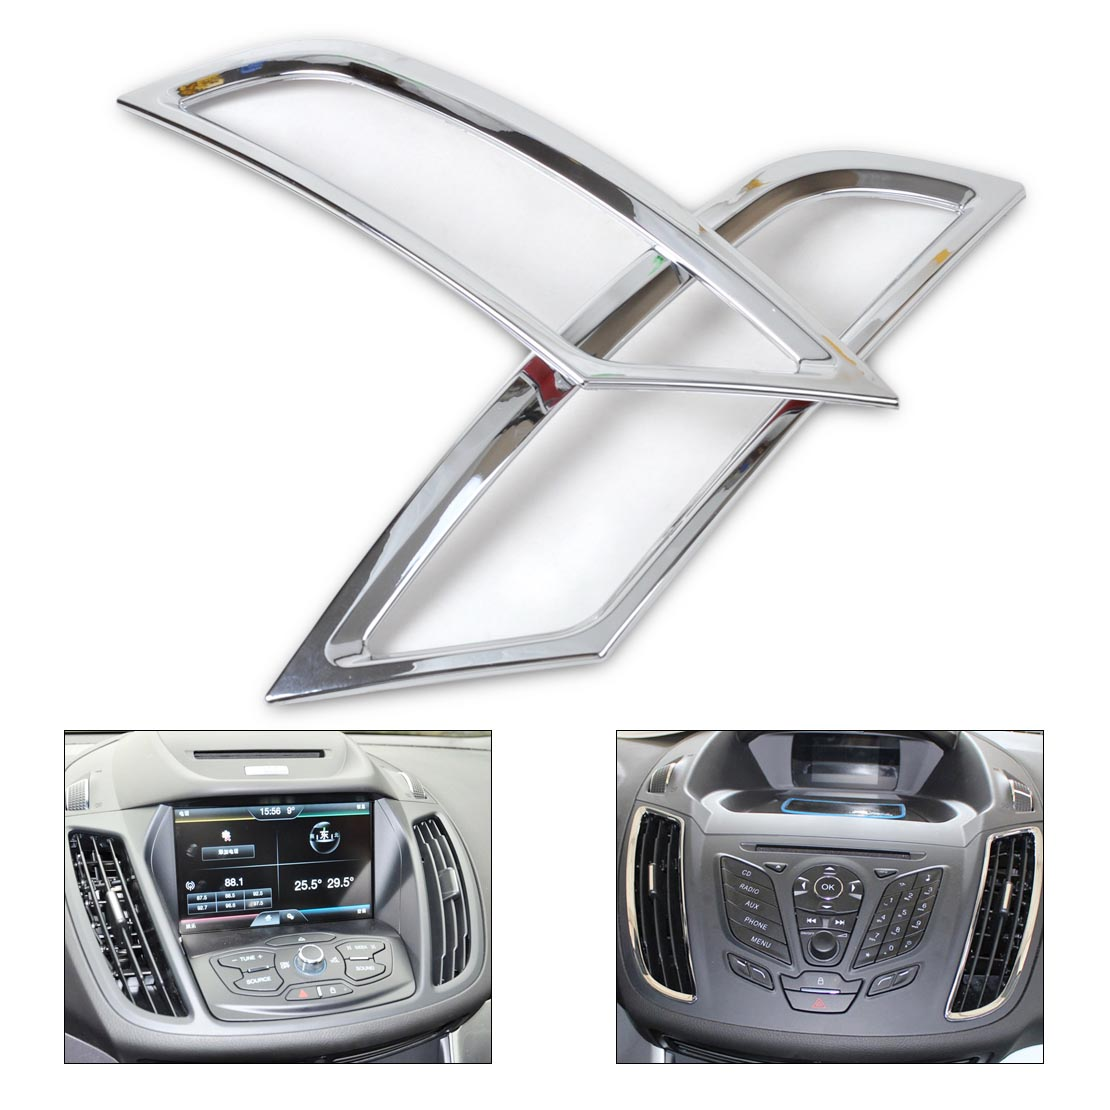 DWCX car styling 2pcs Chrome Dashboard Air Vent Outlet Cover Trim Garnish for Ford Kuga Escape